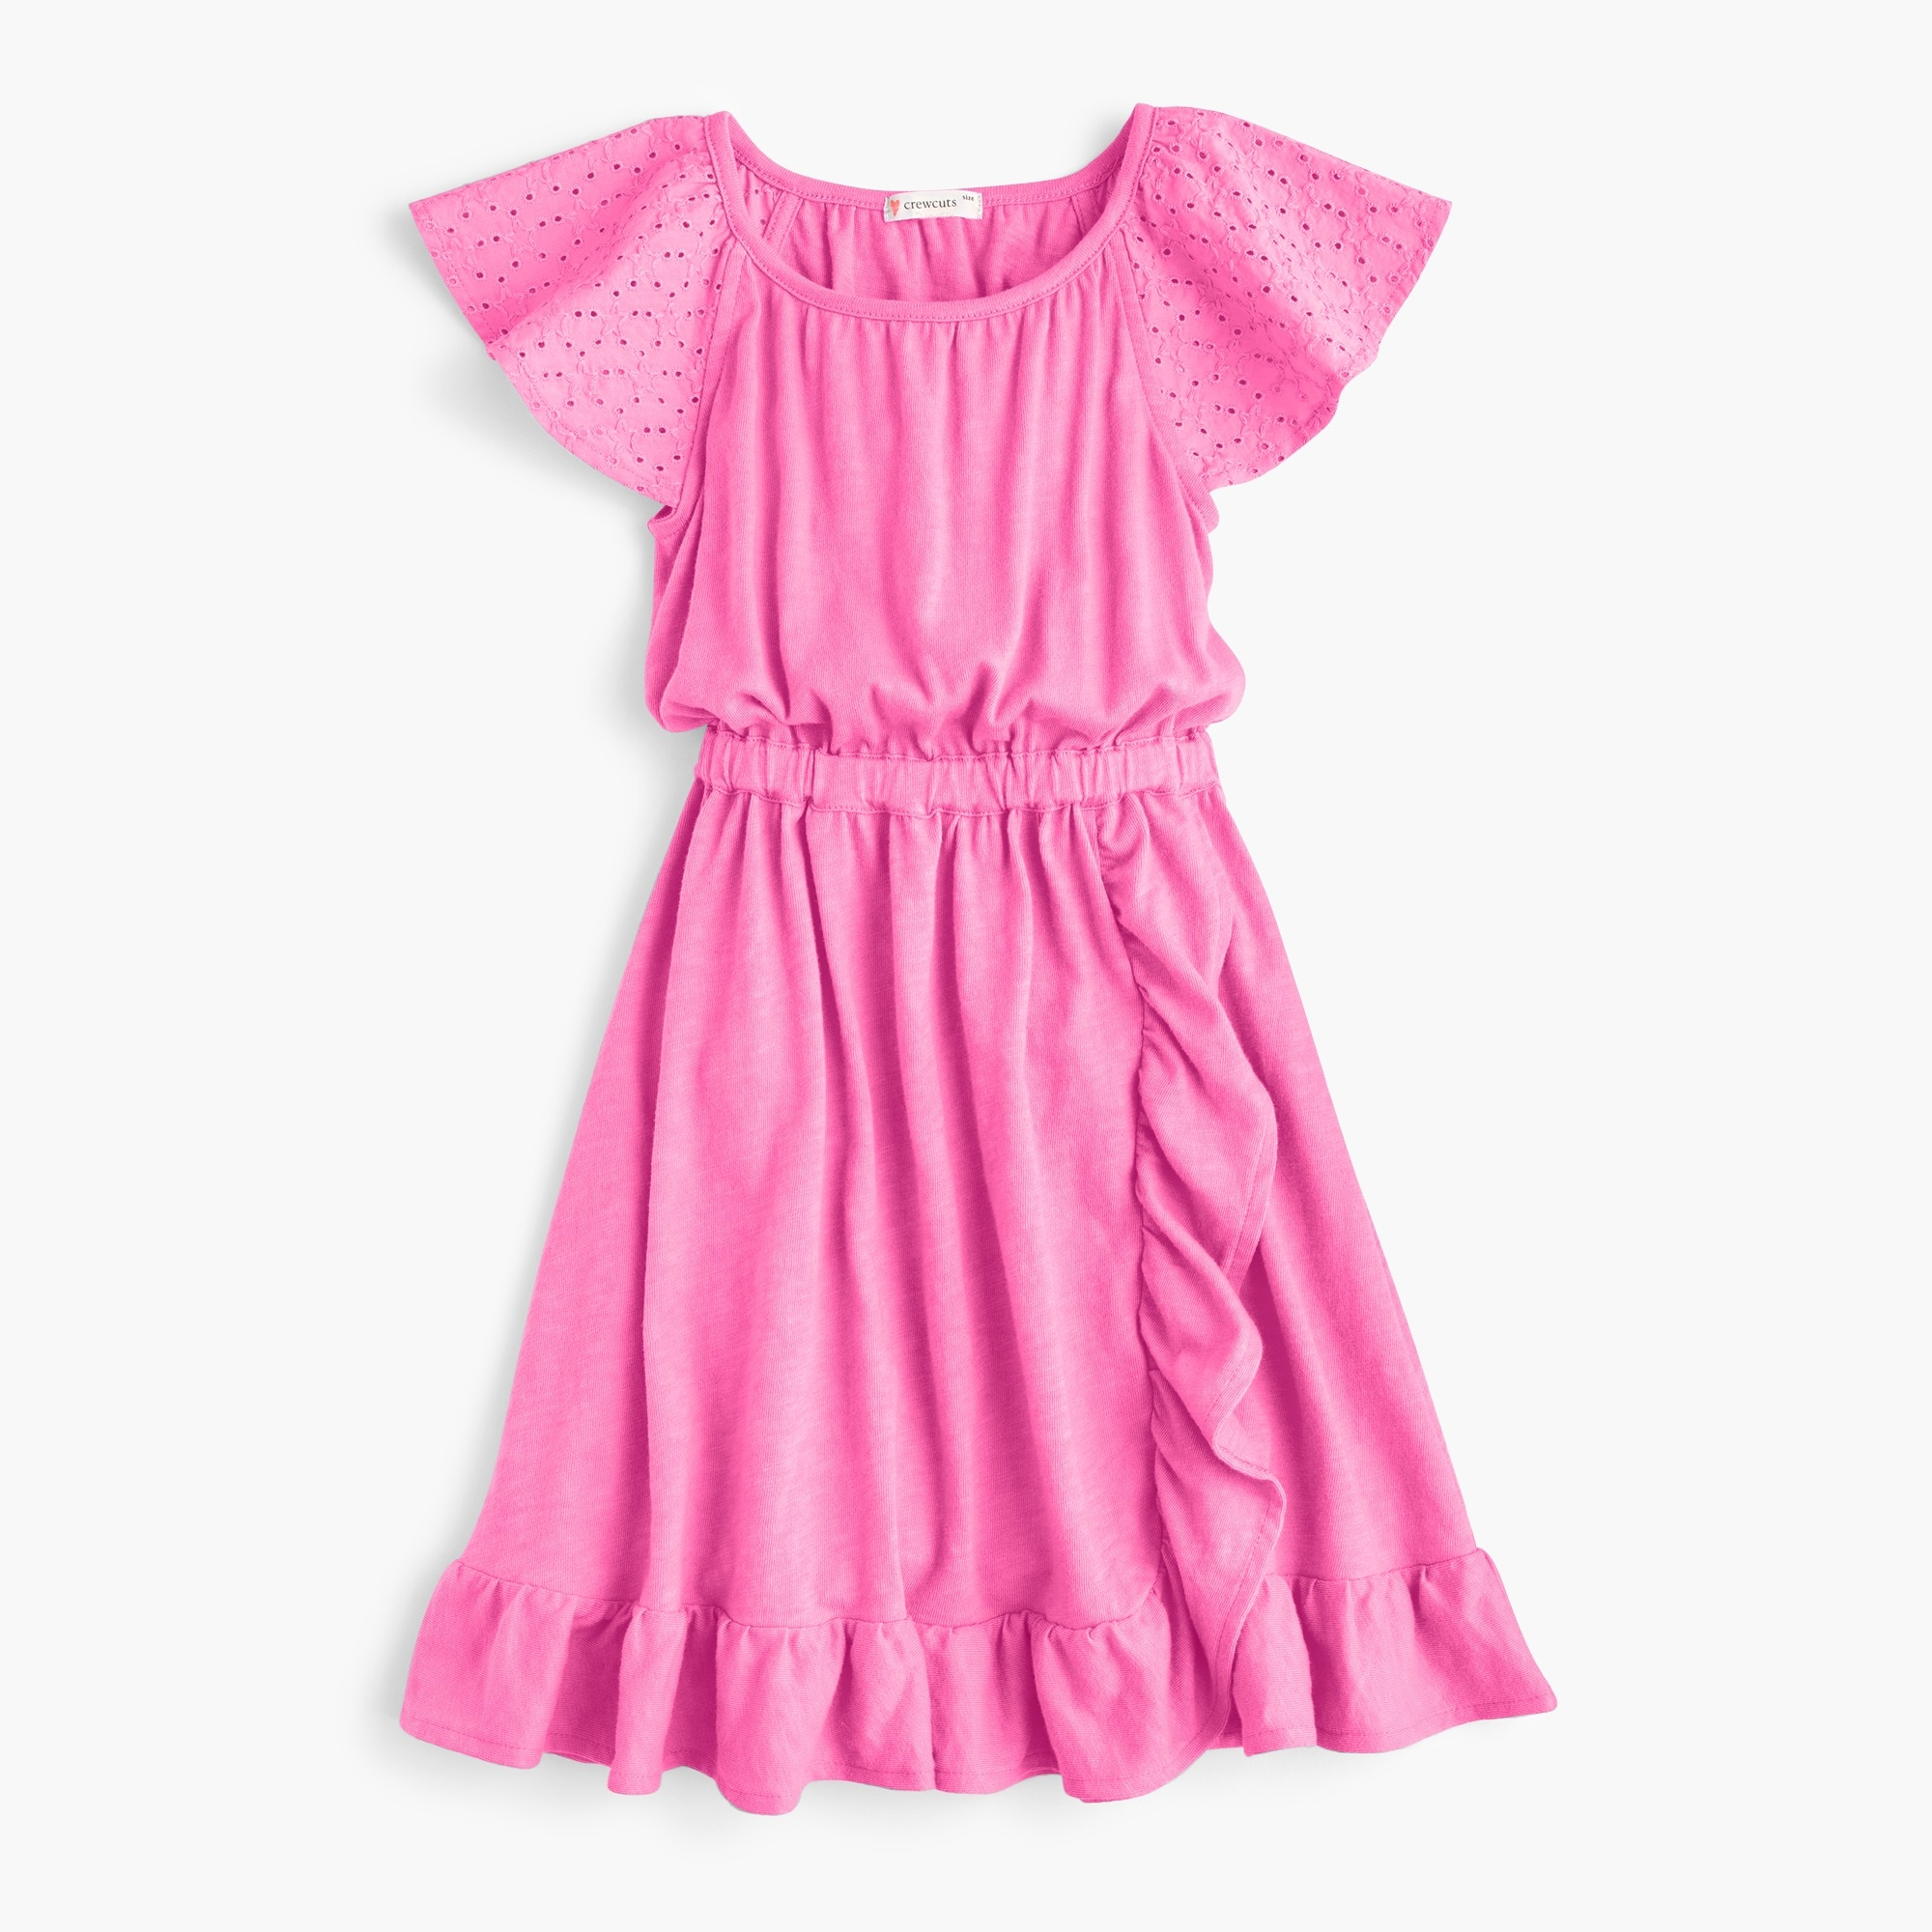 Girls' eyelet-sleeve dress girl dresses & jumpsuits c